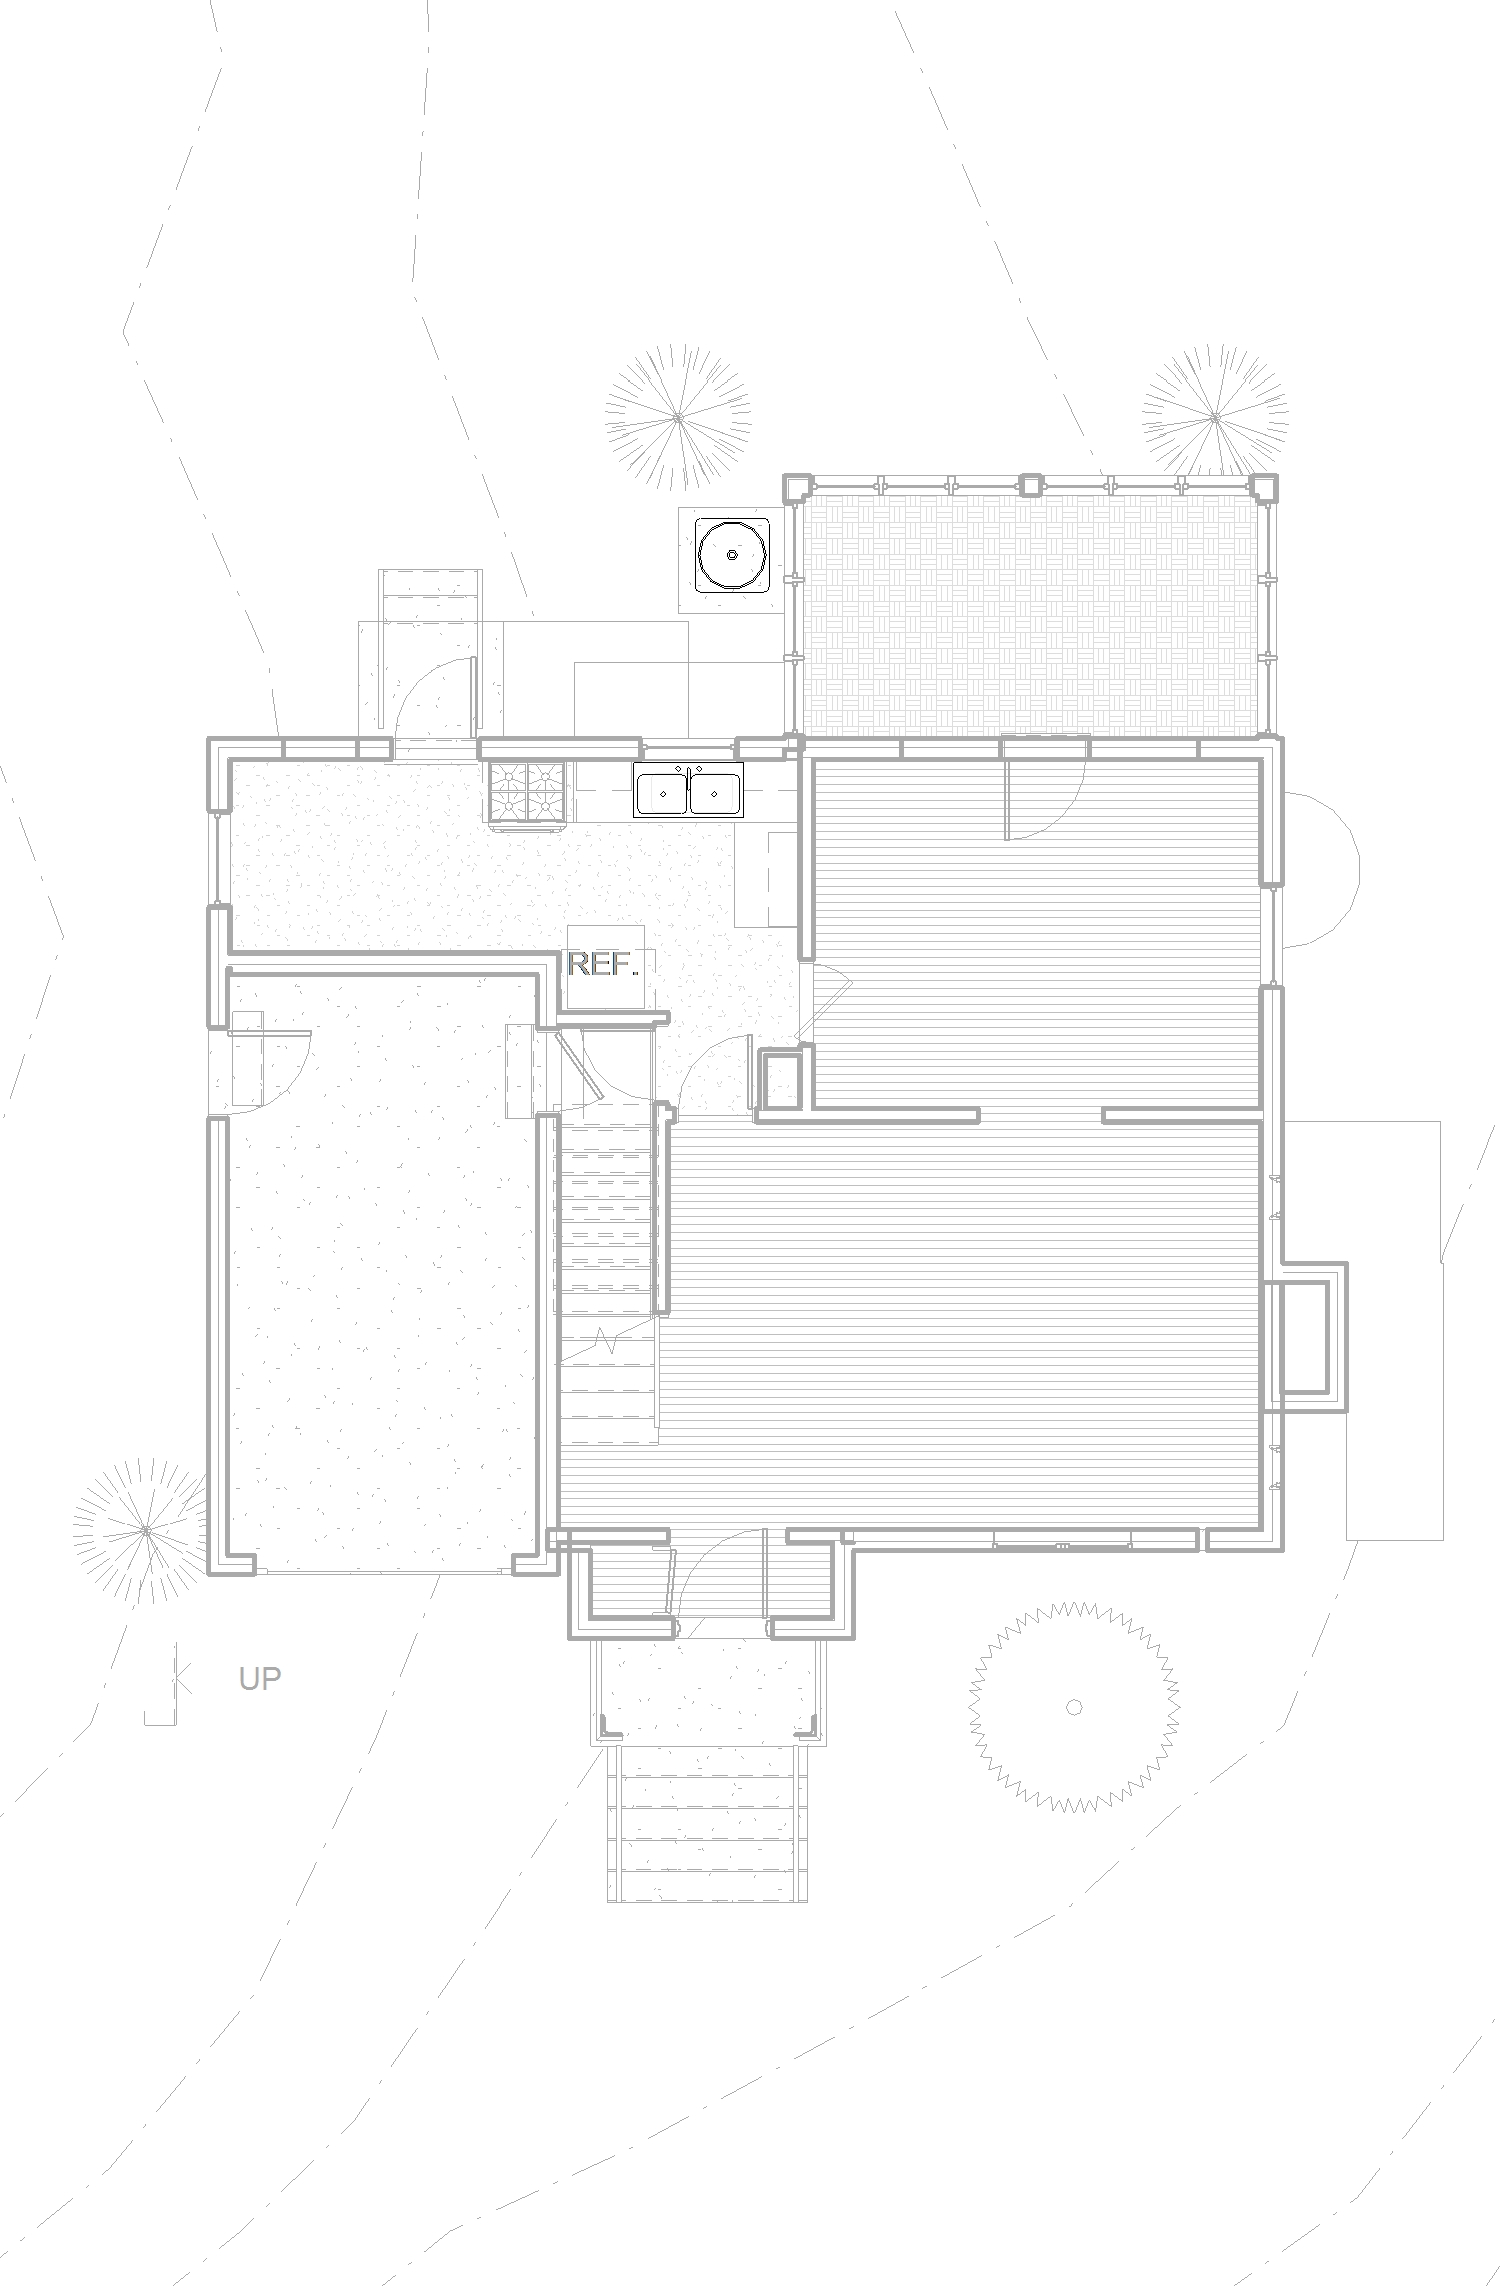 2014-04 4015 Veazey St NW_CENTRAL_09 - Floor Plan - 1ST FLOOR - EXISTING.jpg